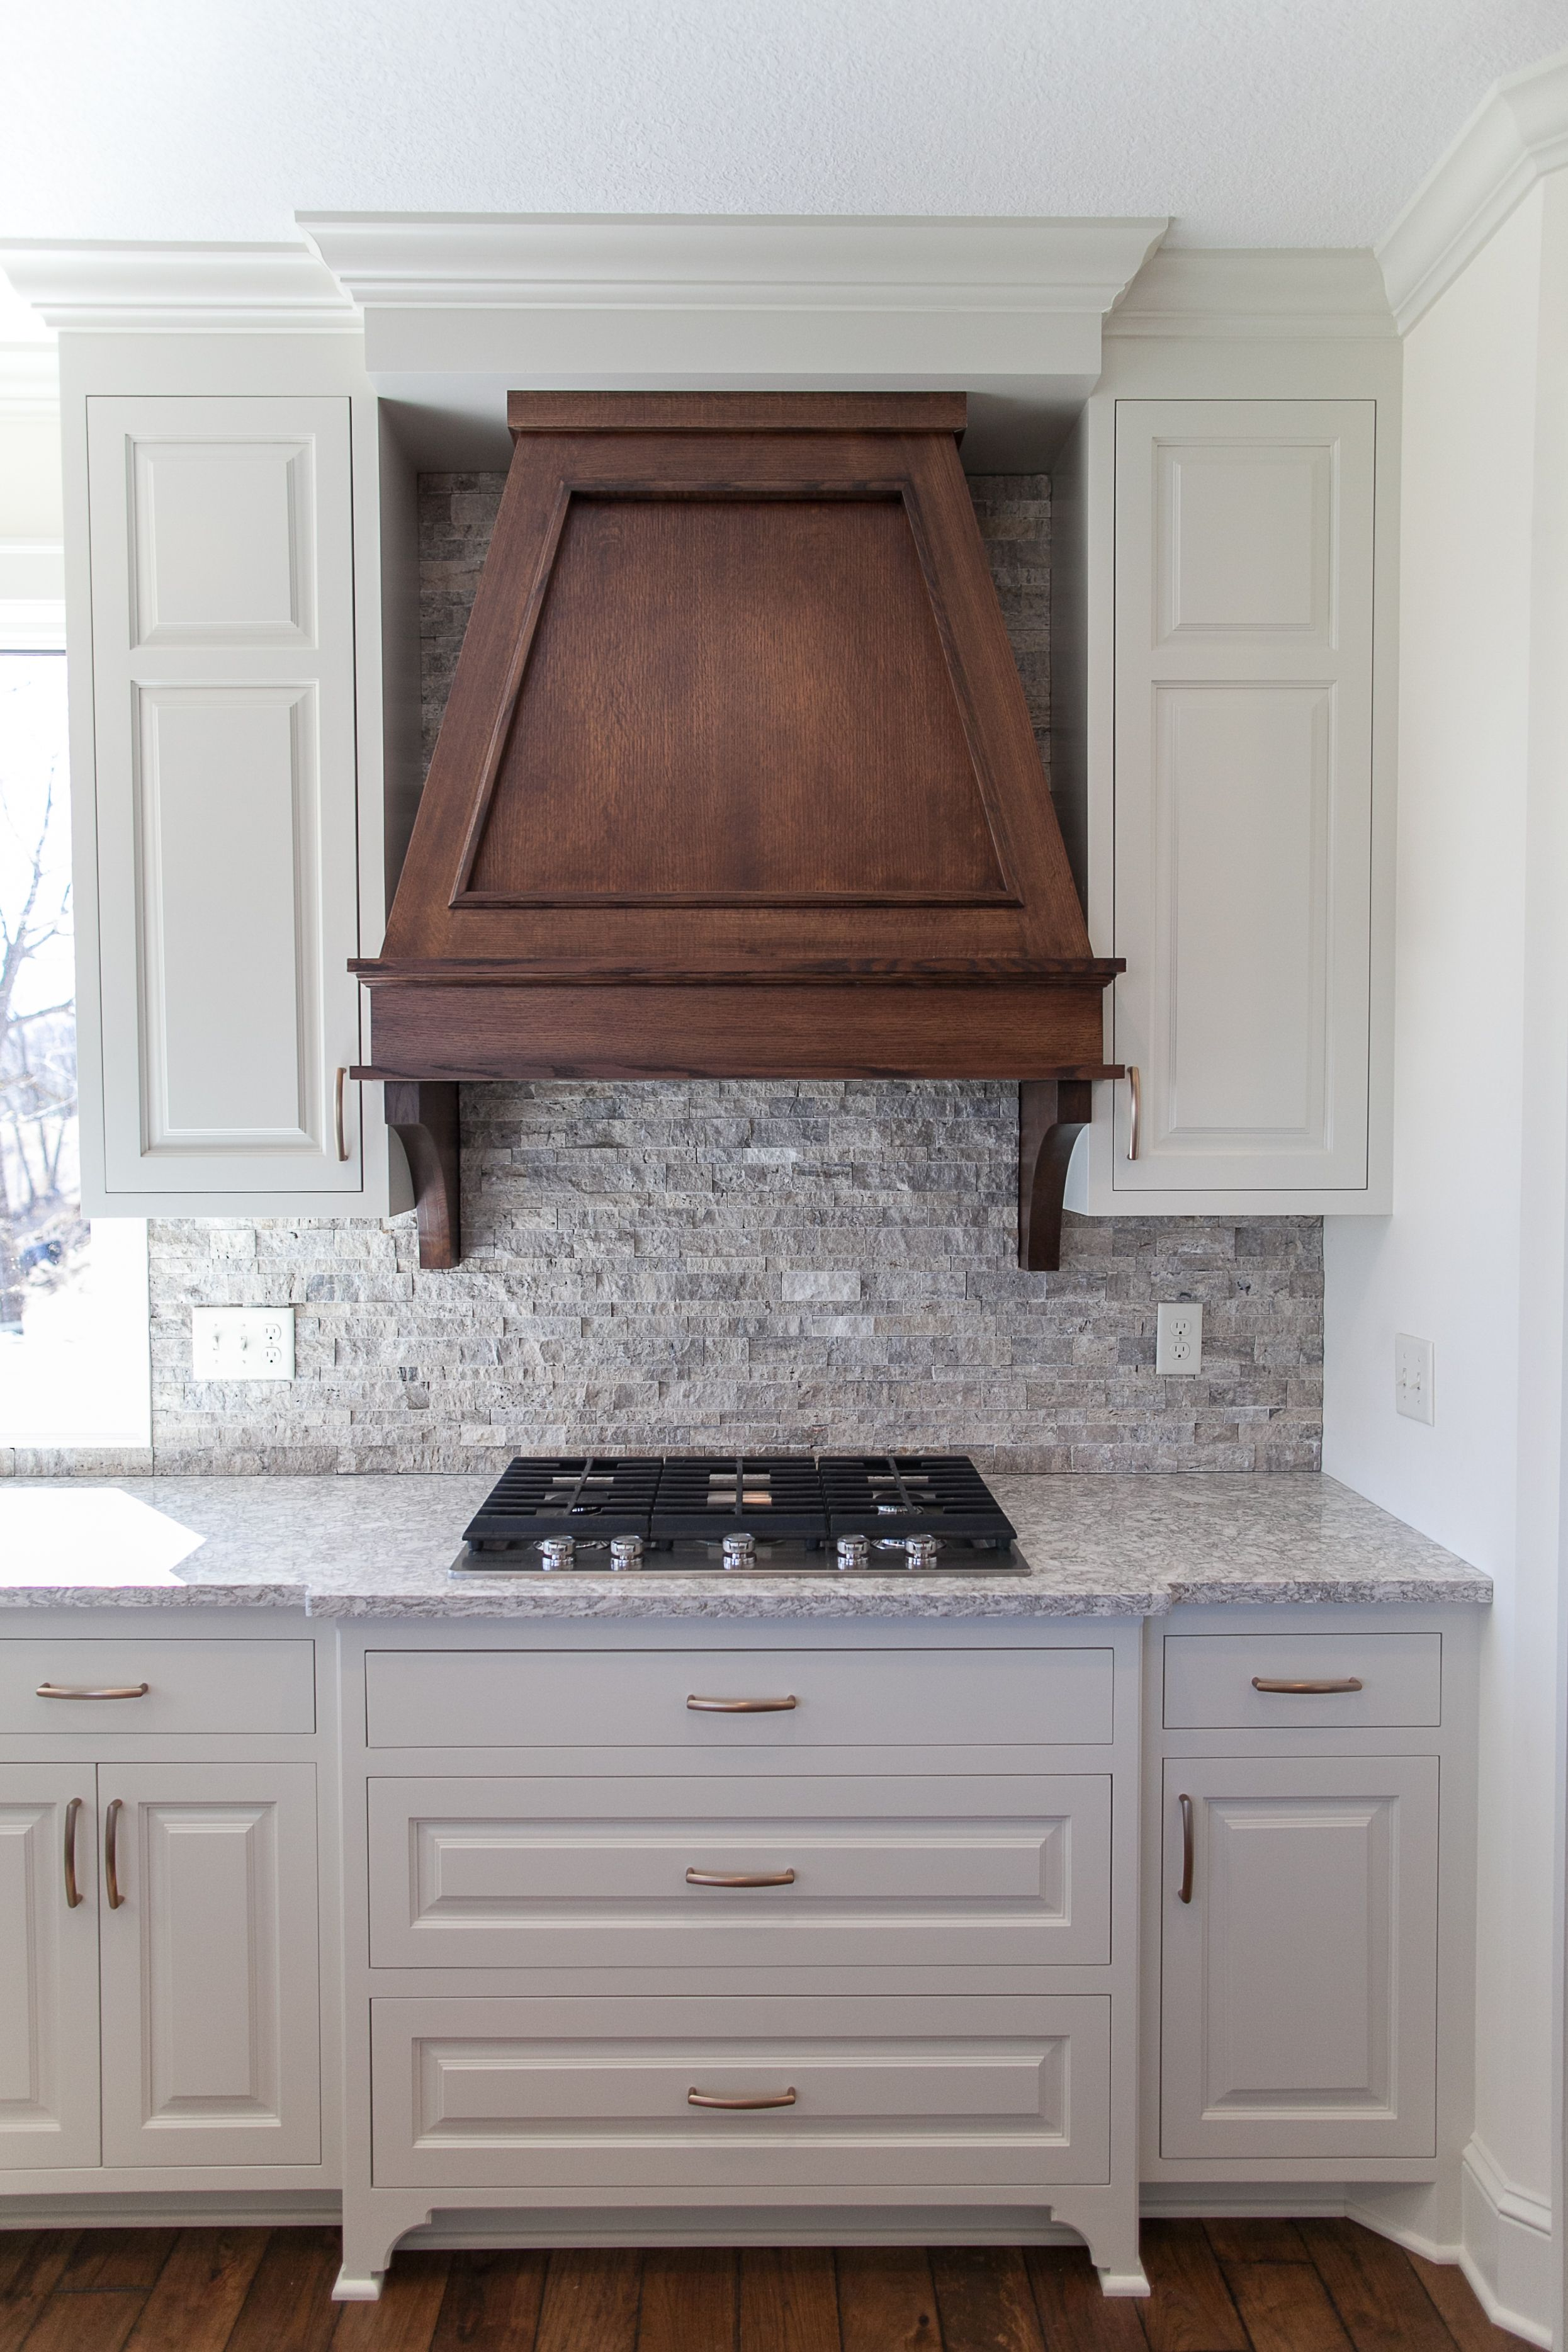 Our Custom Built Range Hood Constructed From Quarter Sawn Oak The Customer Chose Cabinet Pulls Finished In Rose Gold To Co Inset Cabinetry Range Hood Kitchen